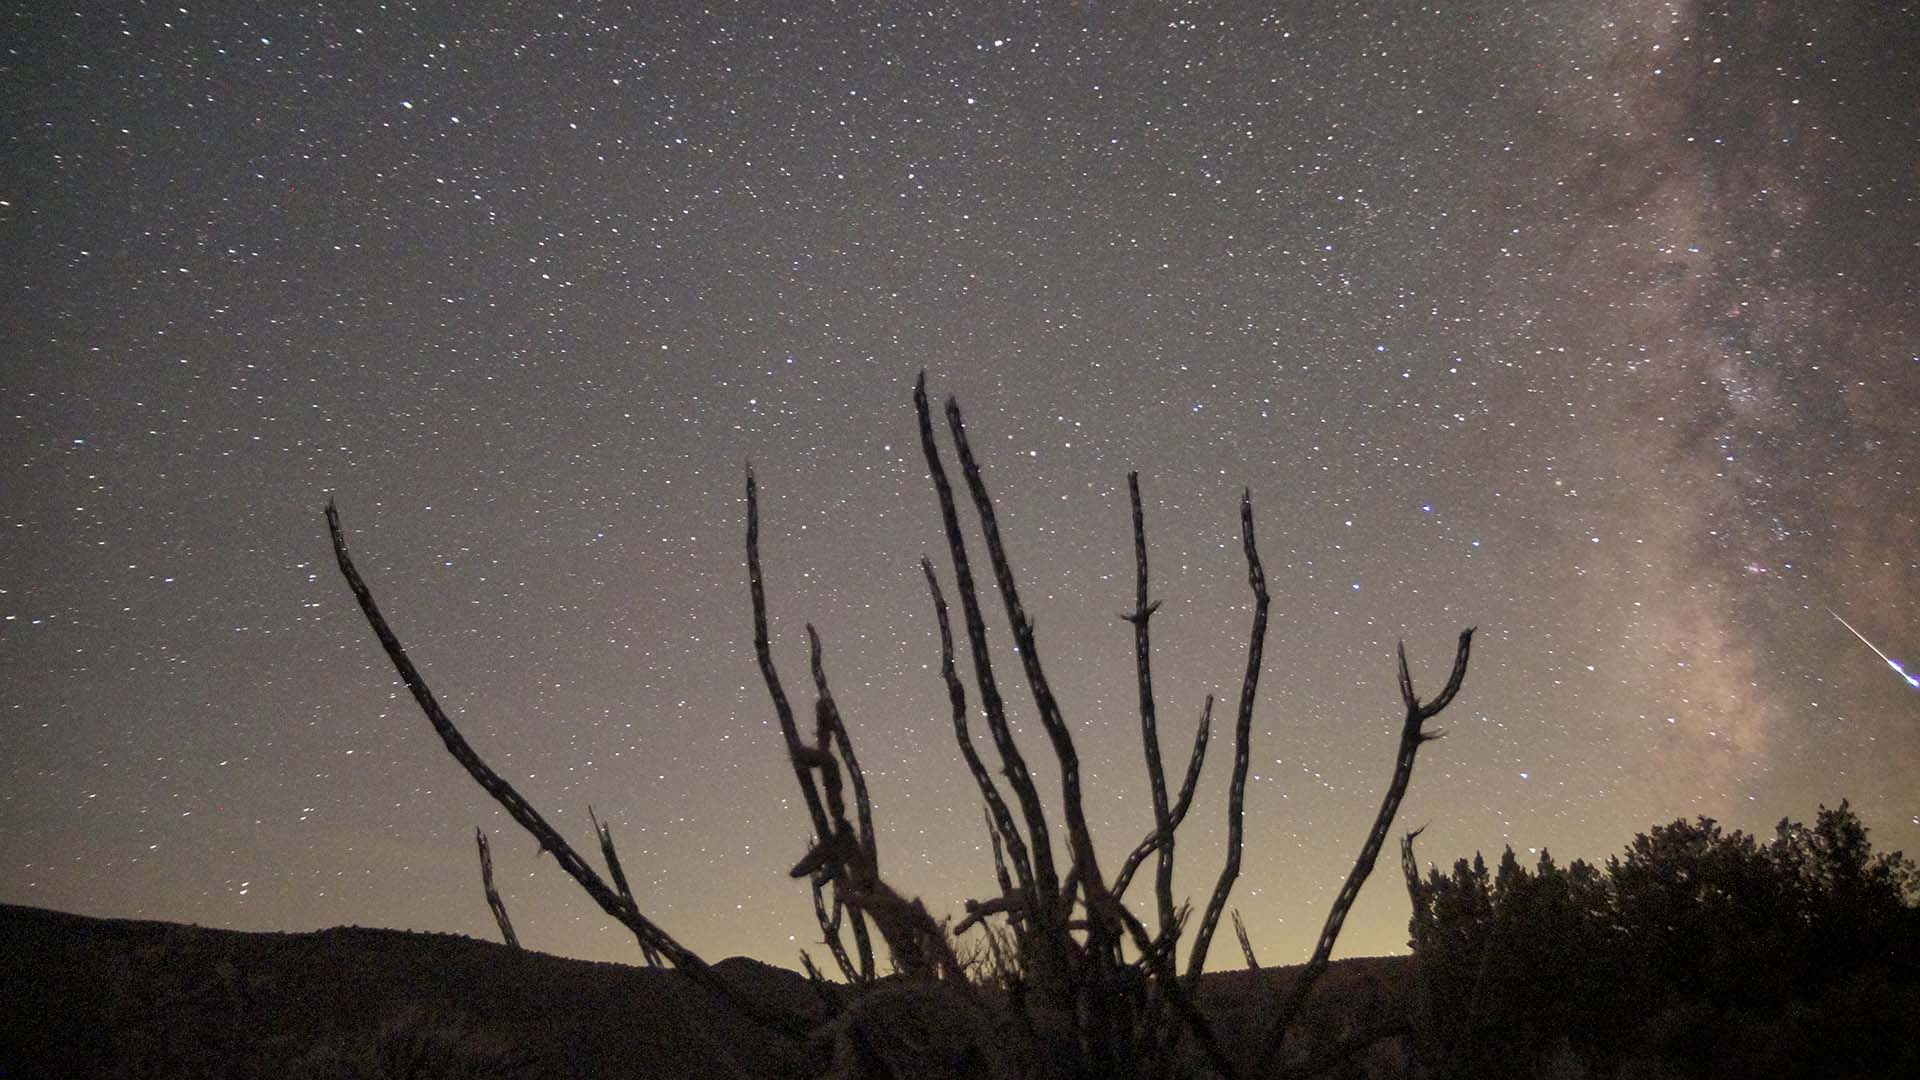 The Long-Lasting Delta Aquariids Meteor Shower Will Be Visible Down Under Next Month